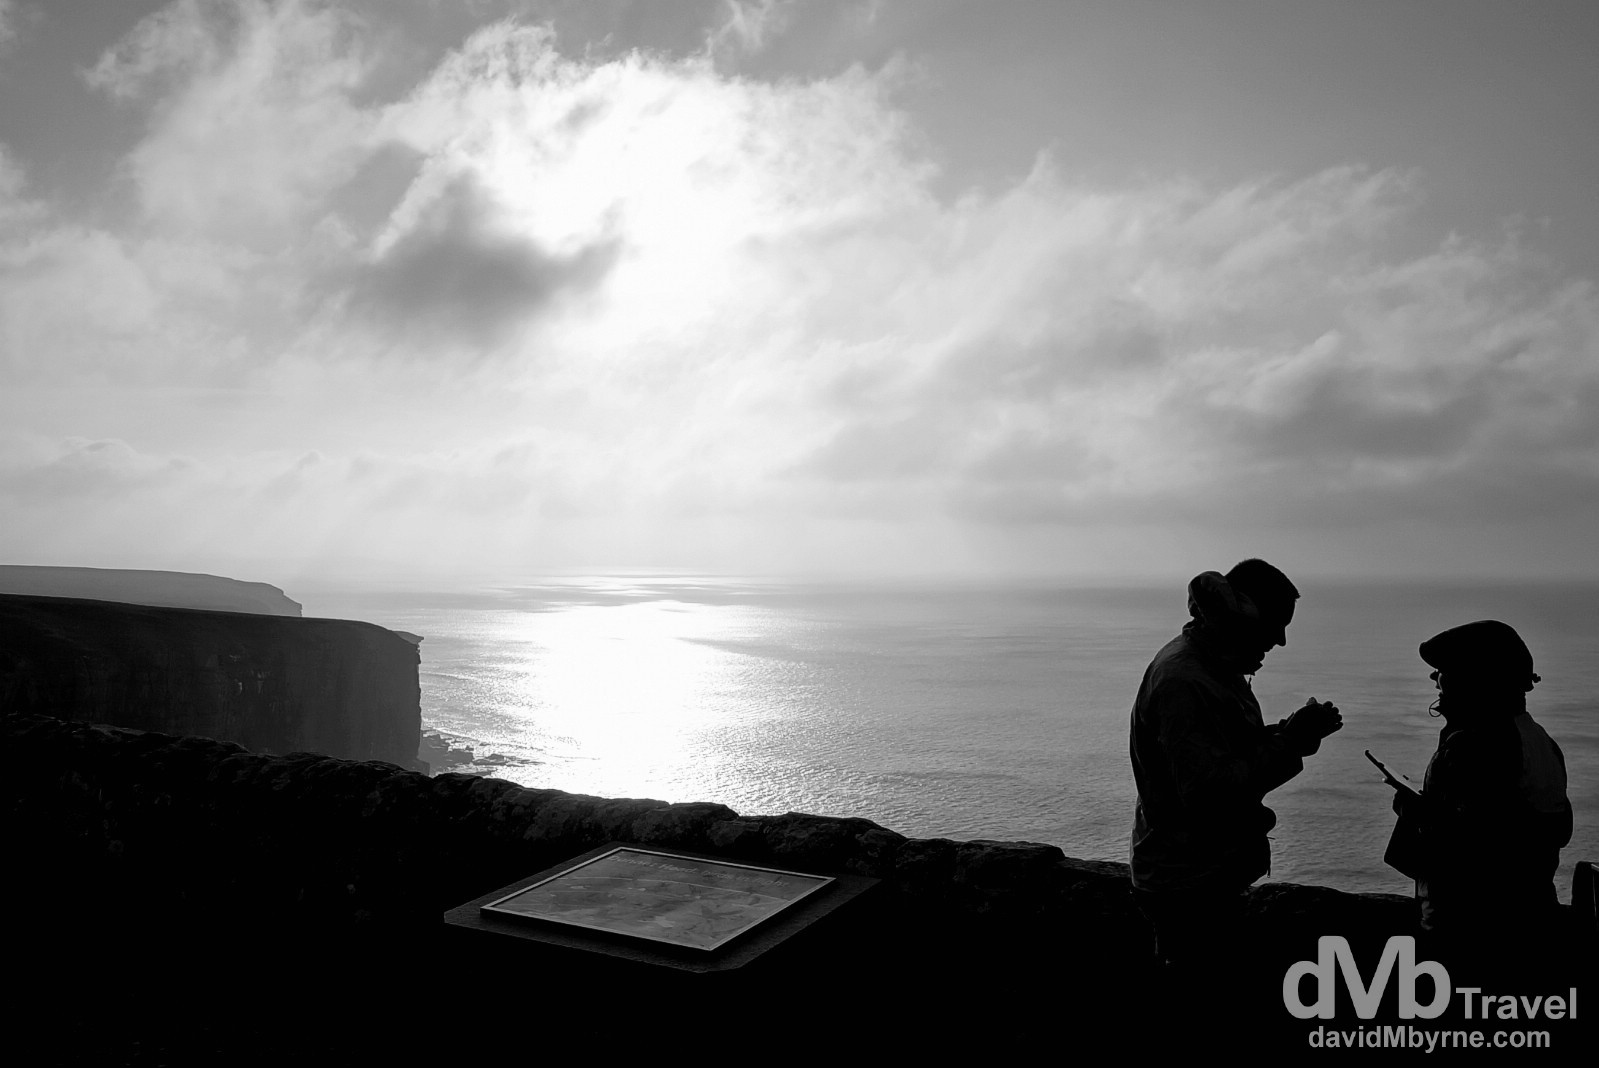 Silhouettes at Dunnet Head, the most northerly point on the British mainland. Dunnet Head, Scotland. September 14, 2014.